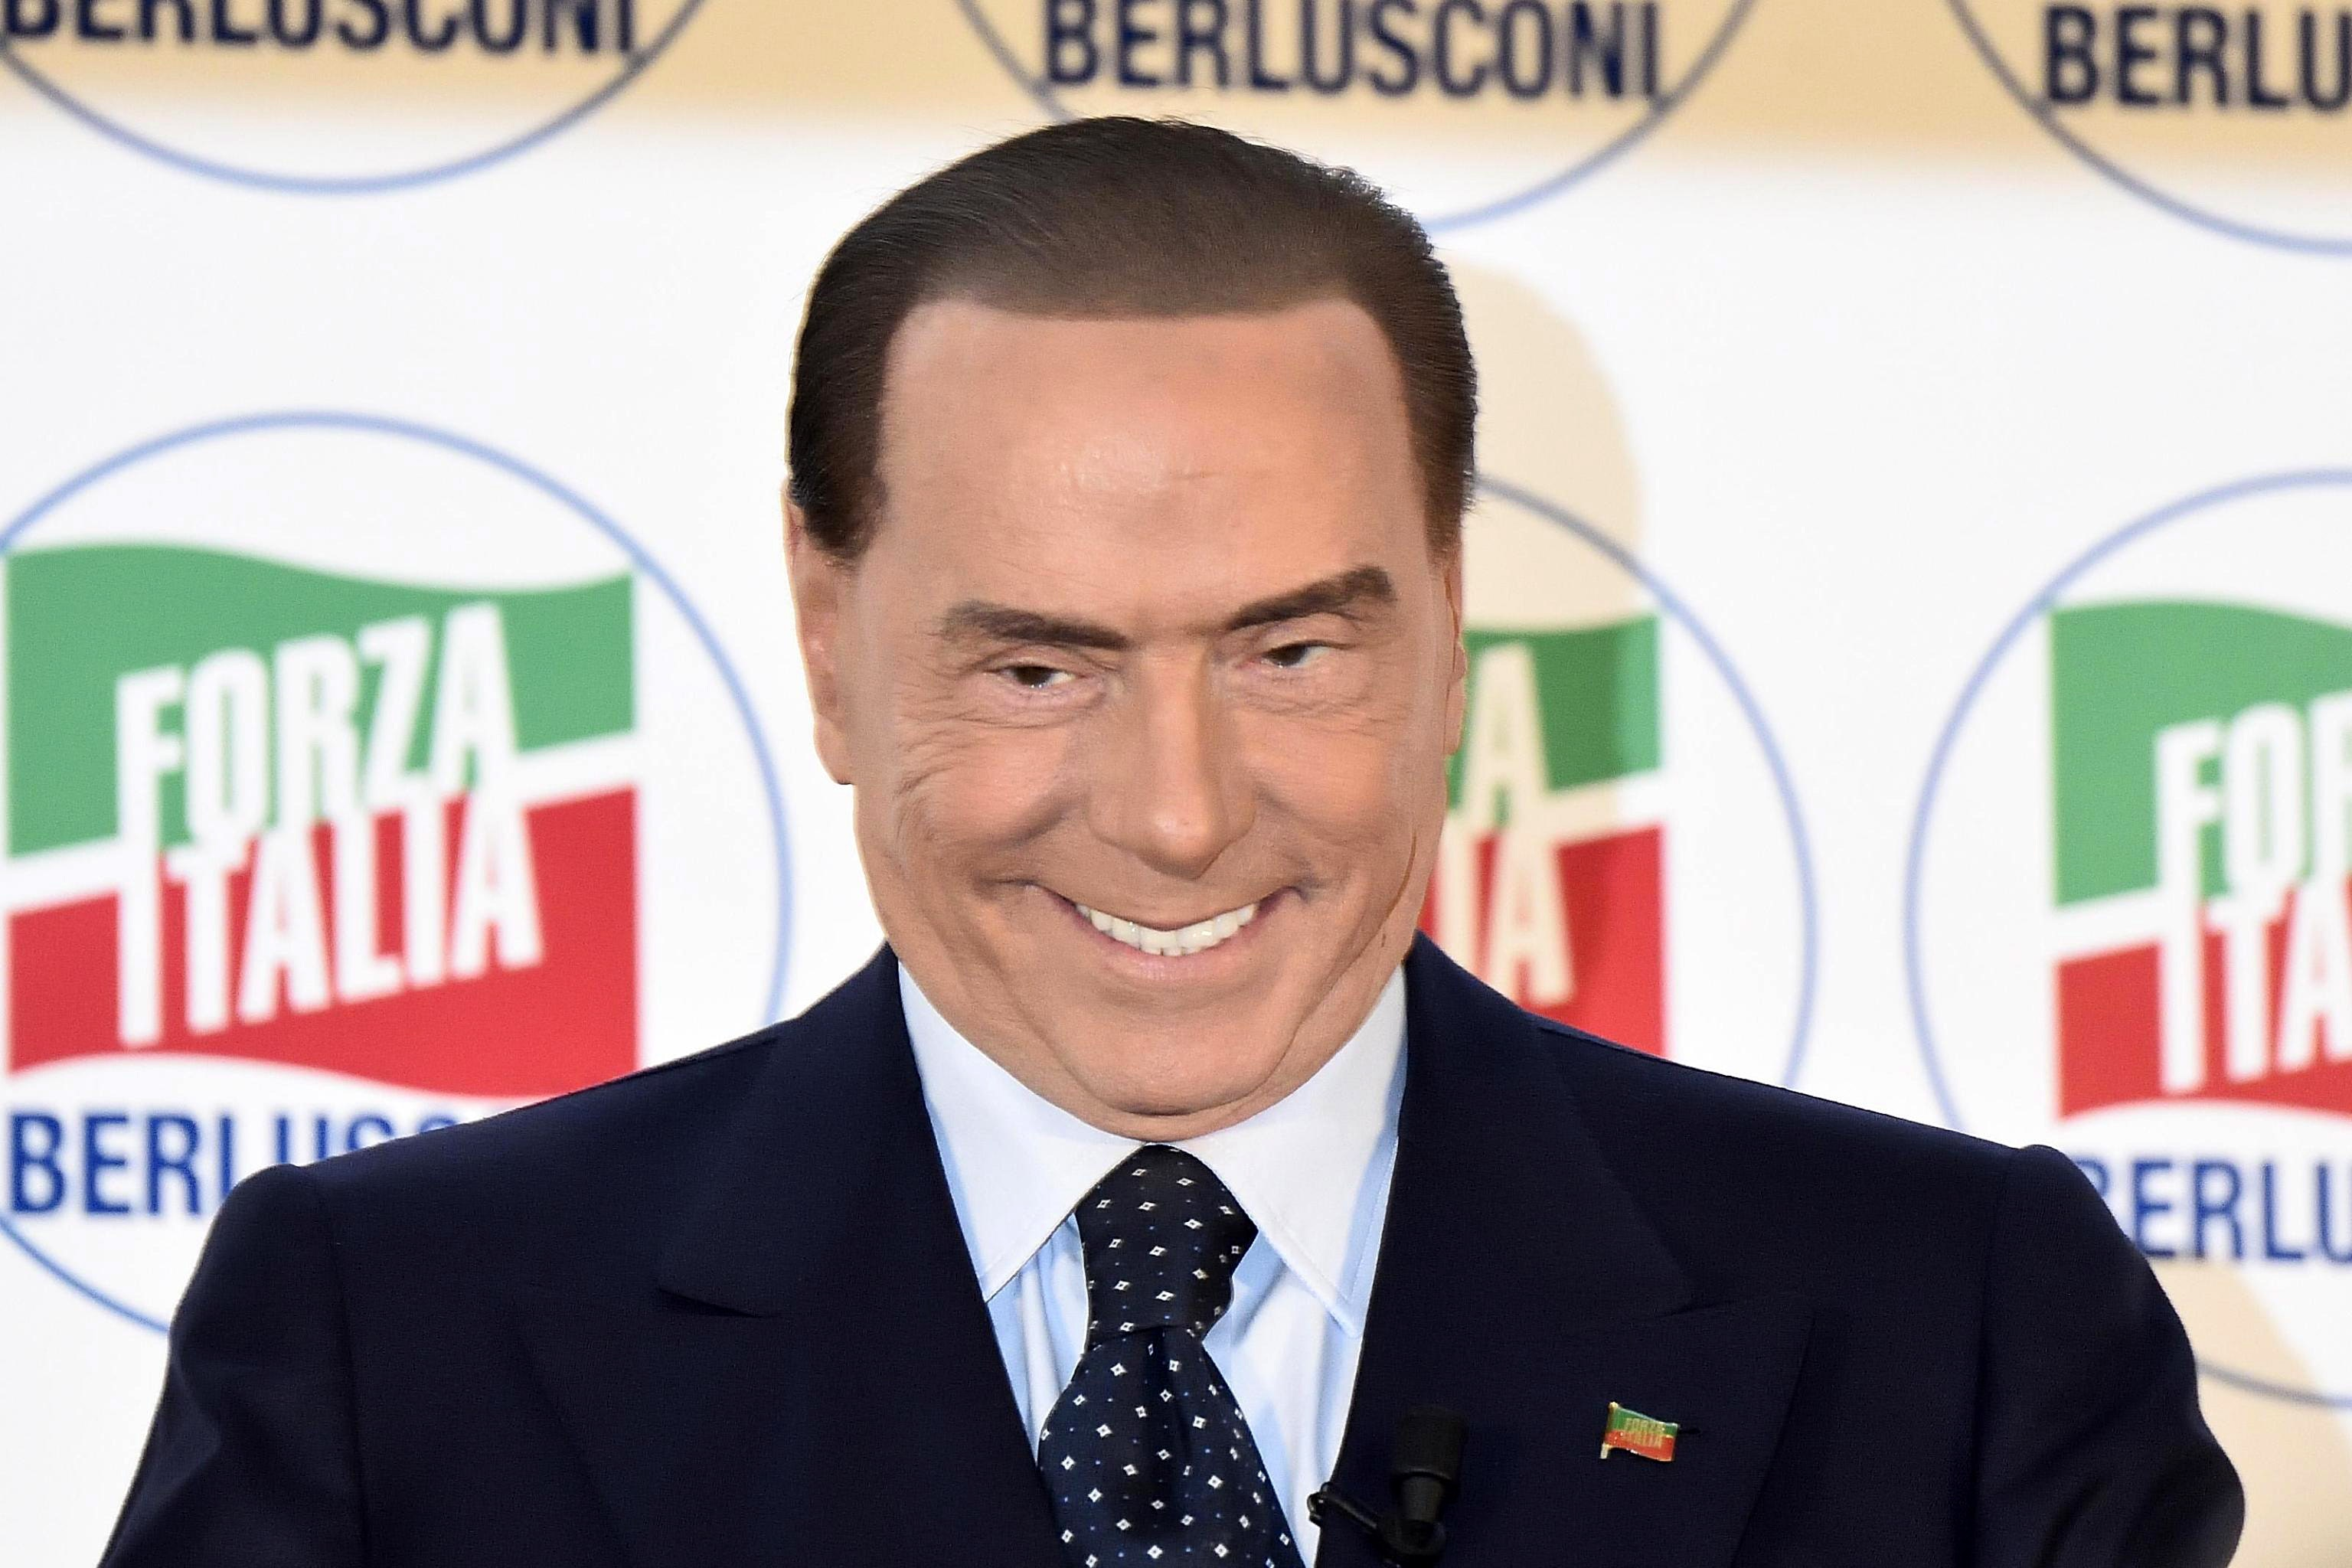 All makt till berlusconi